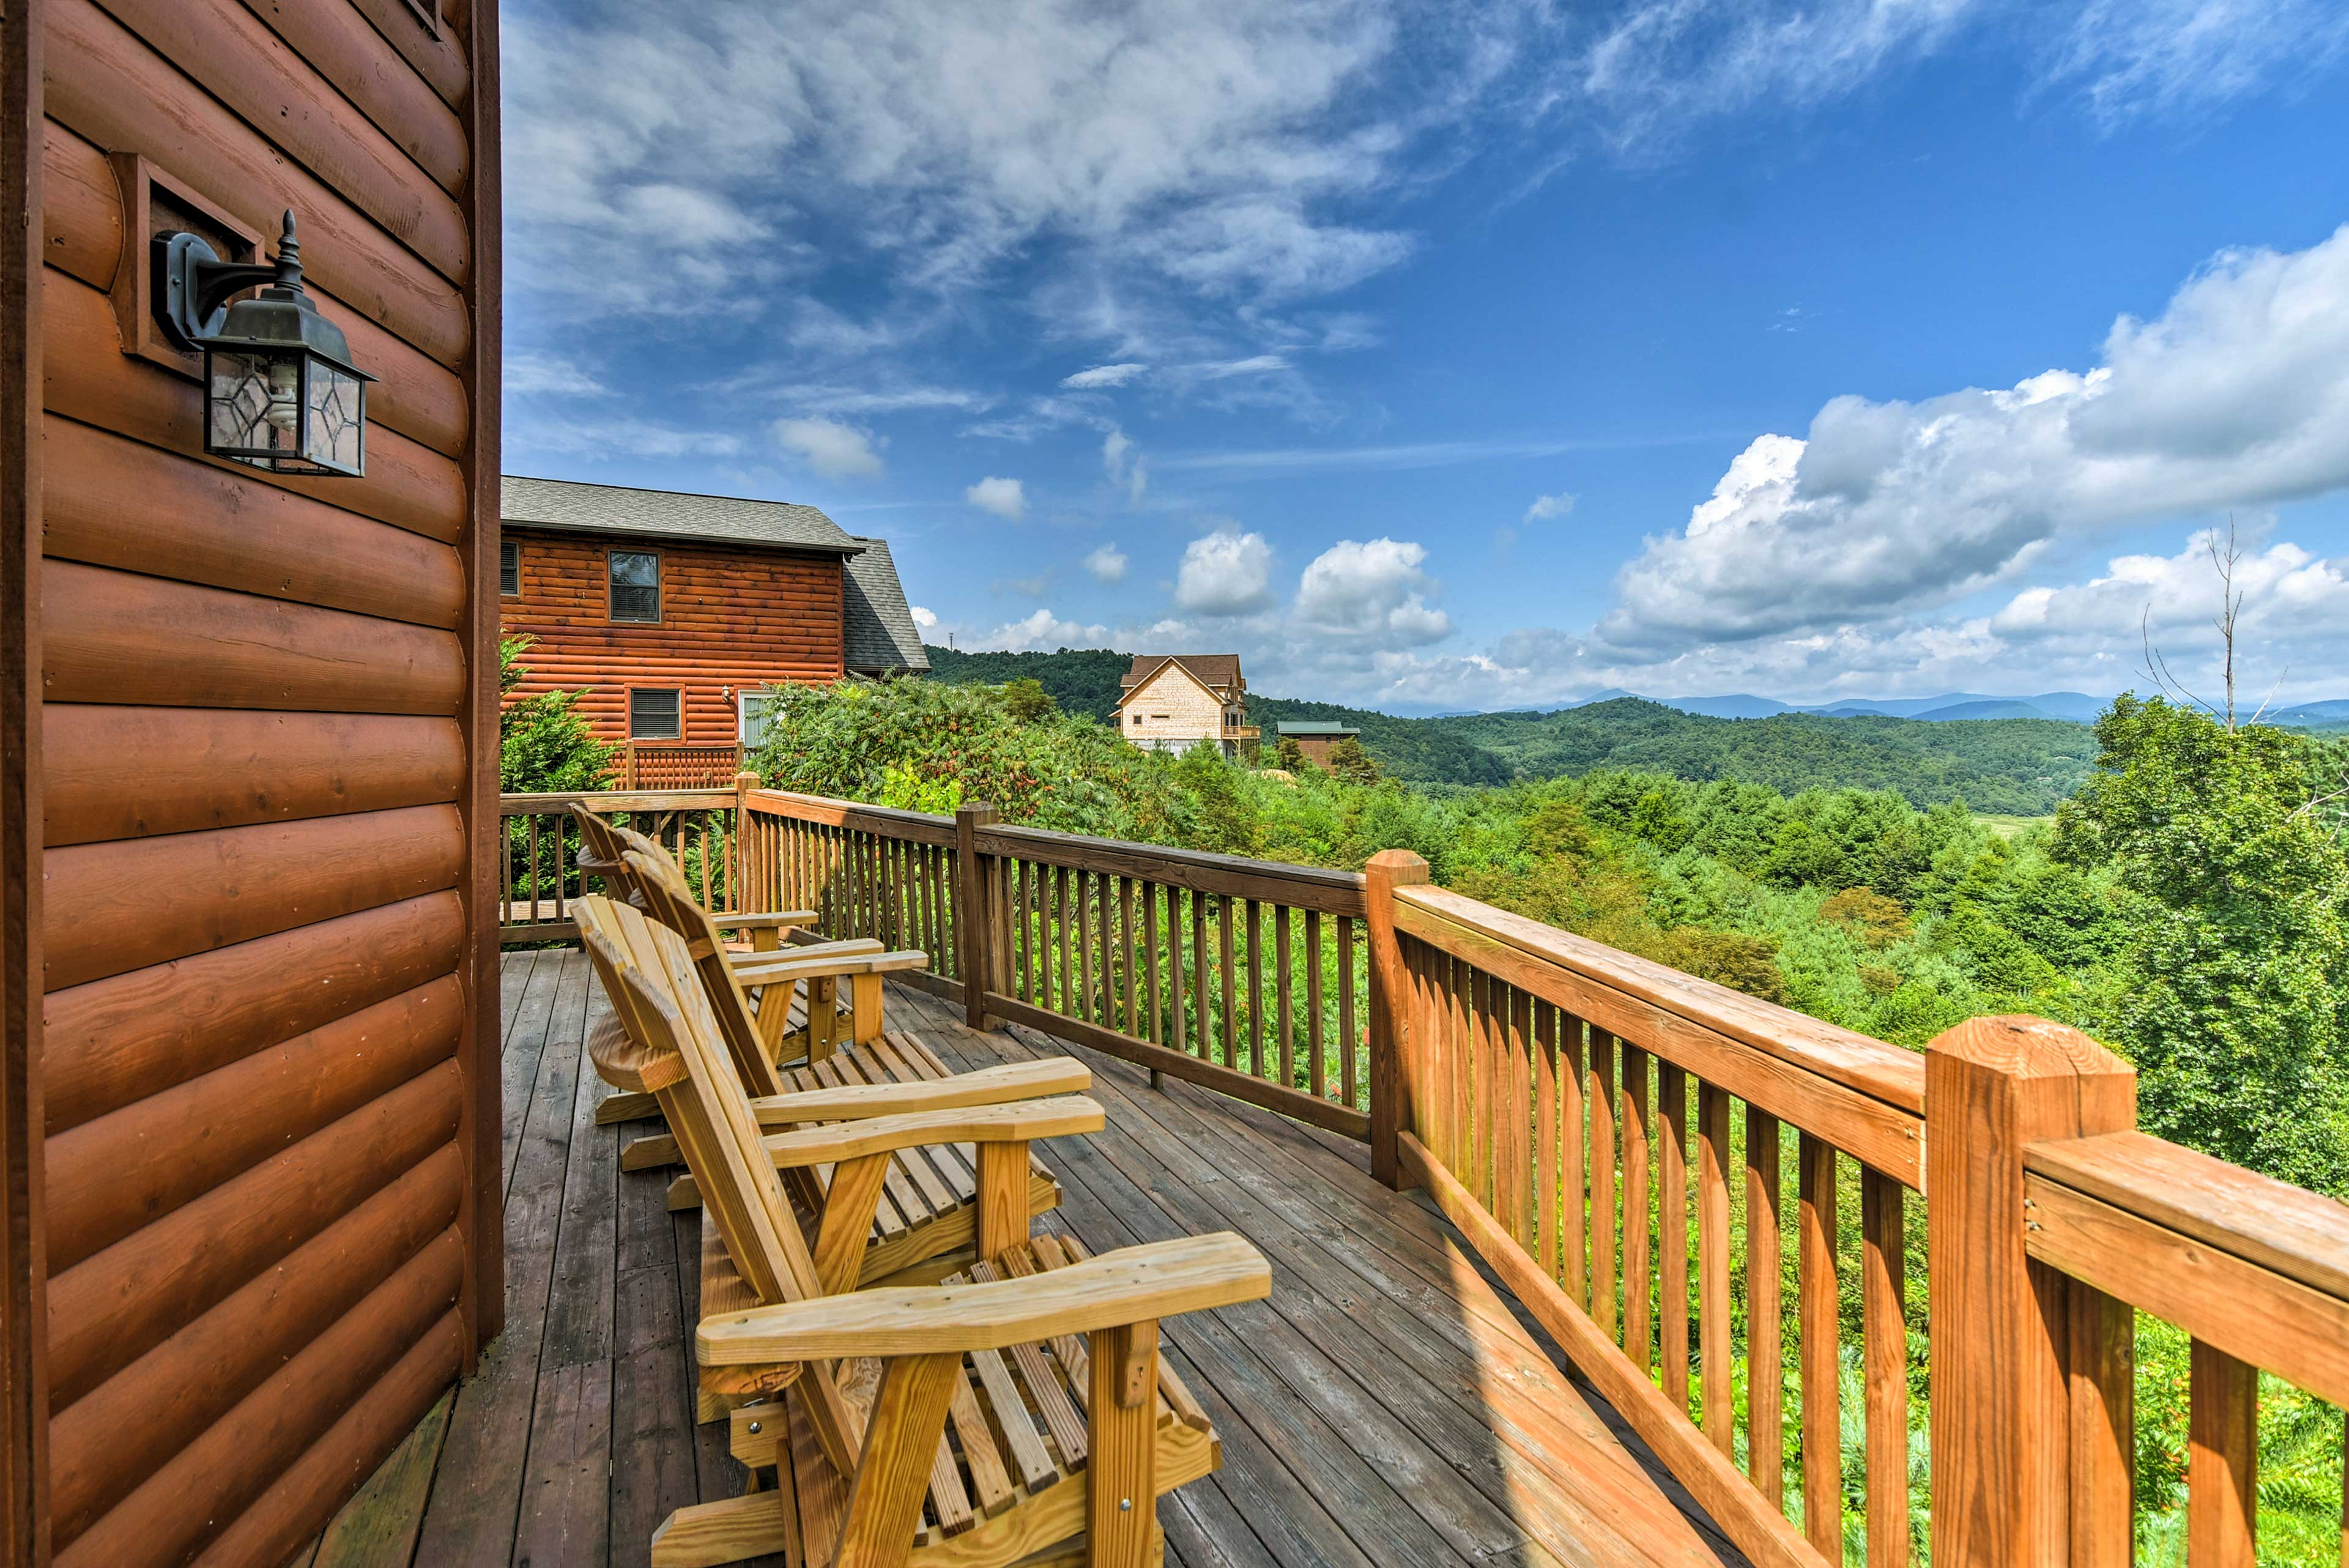 Lazy afternoons on the deck overlooking the forest will be your favorite thing!